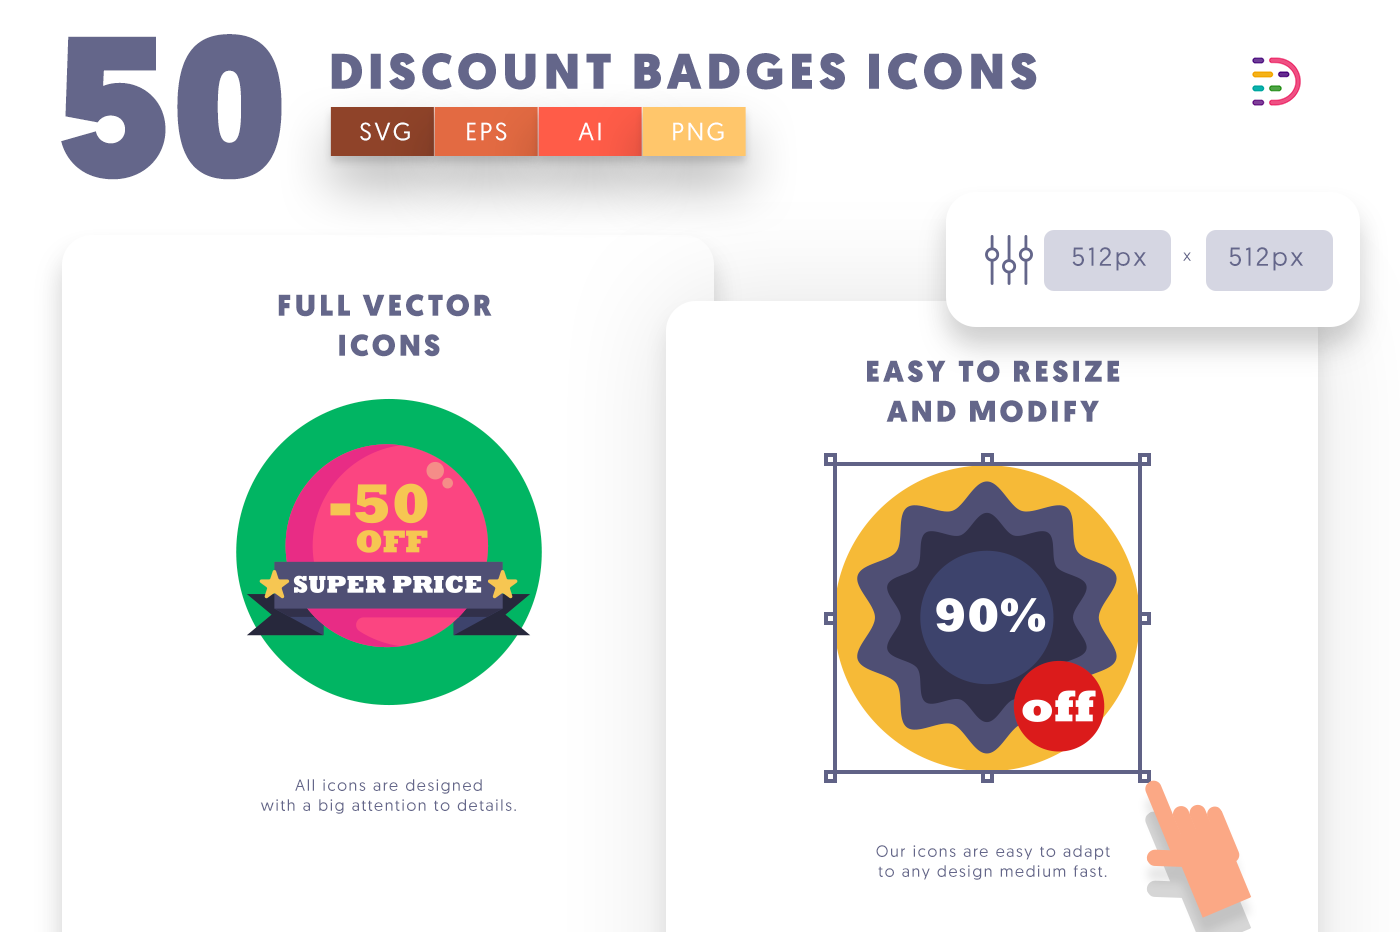 Full vector 50Discountbadges Icons